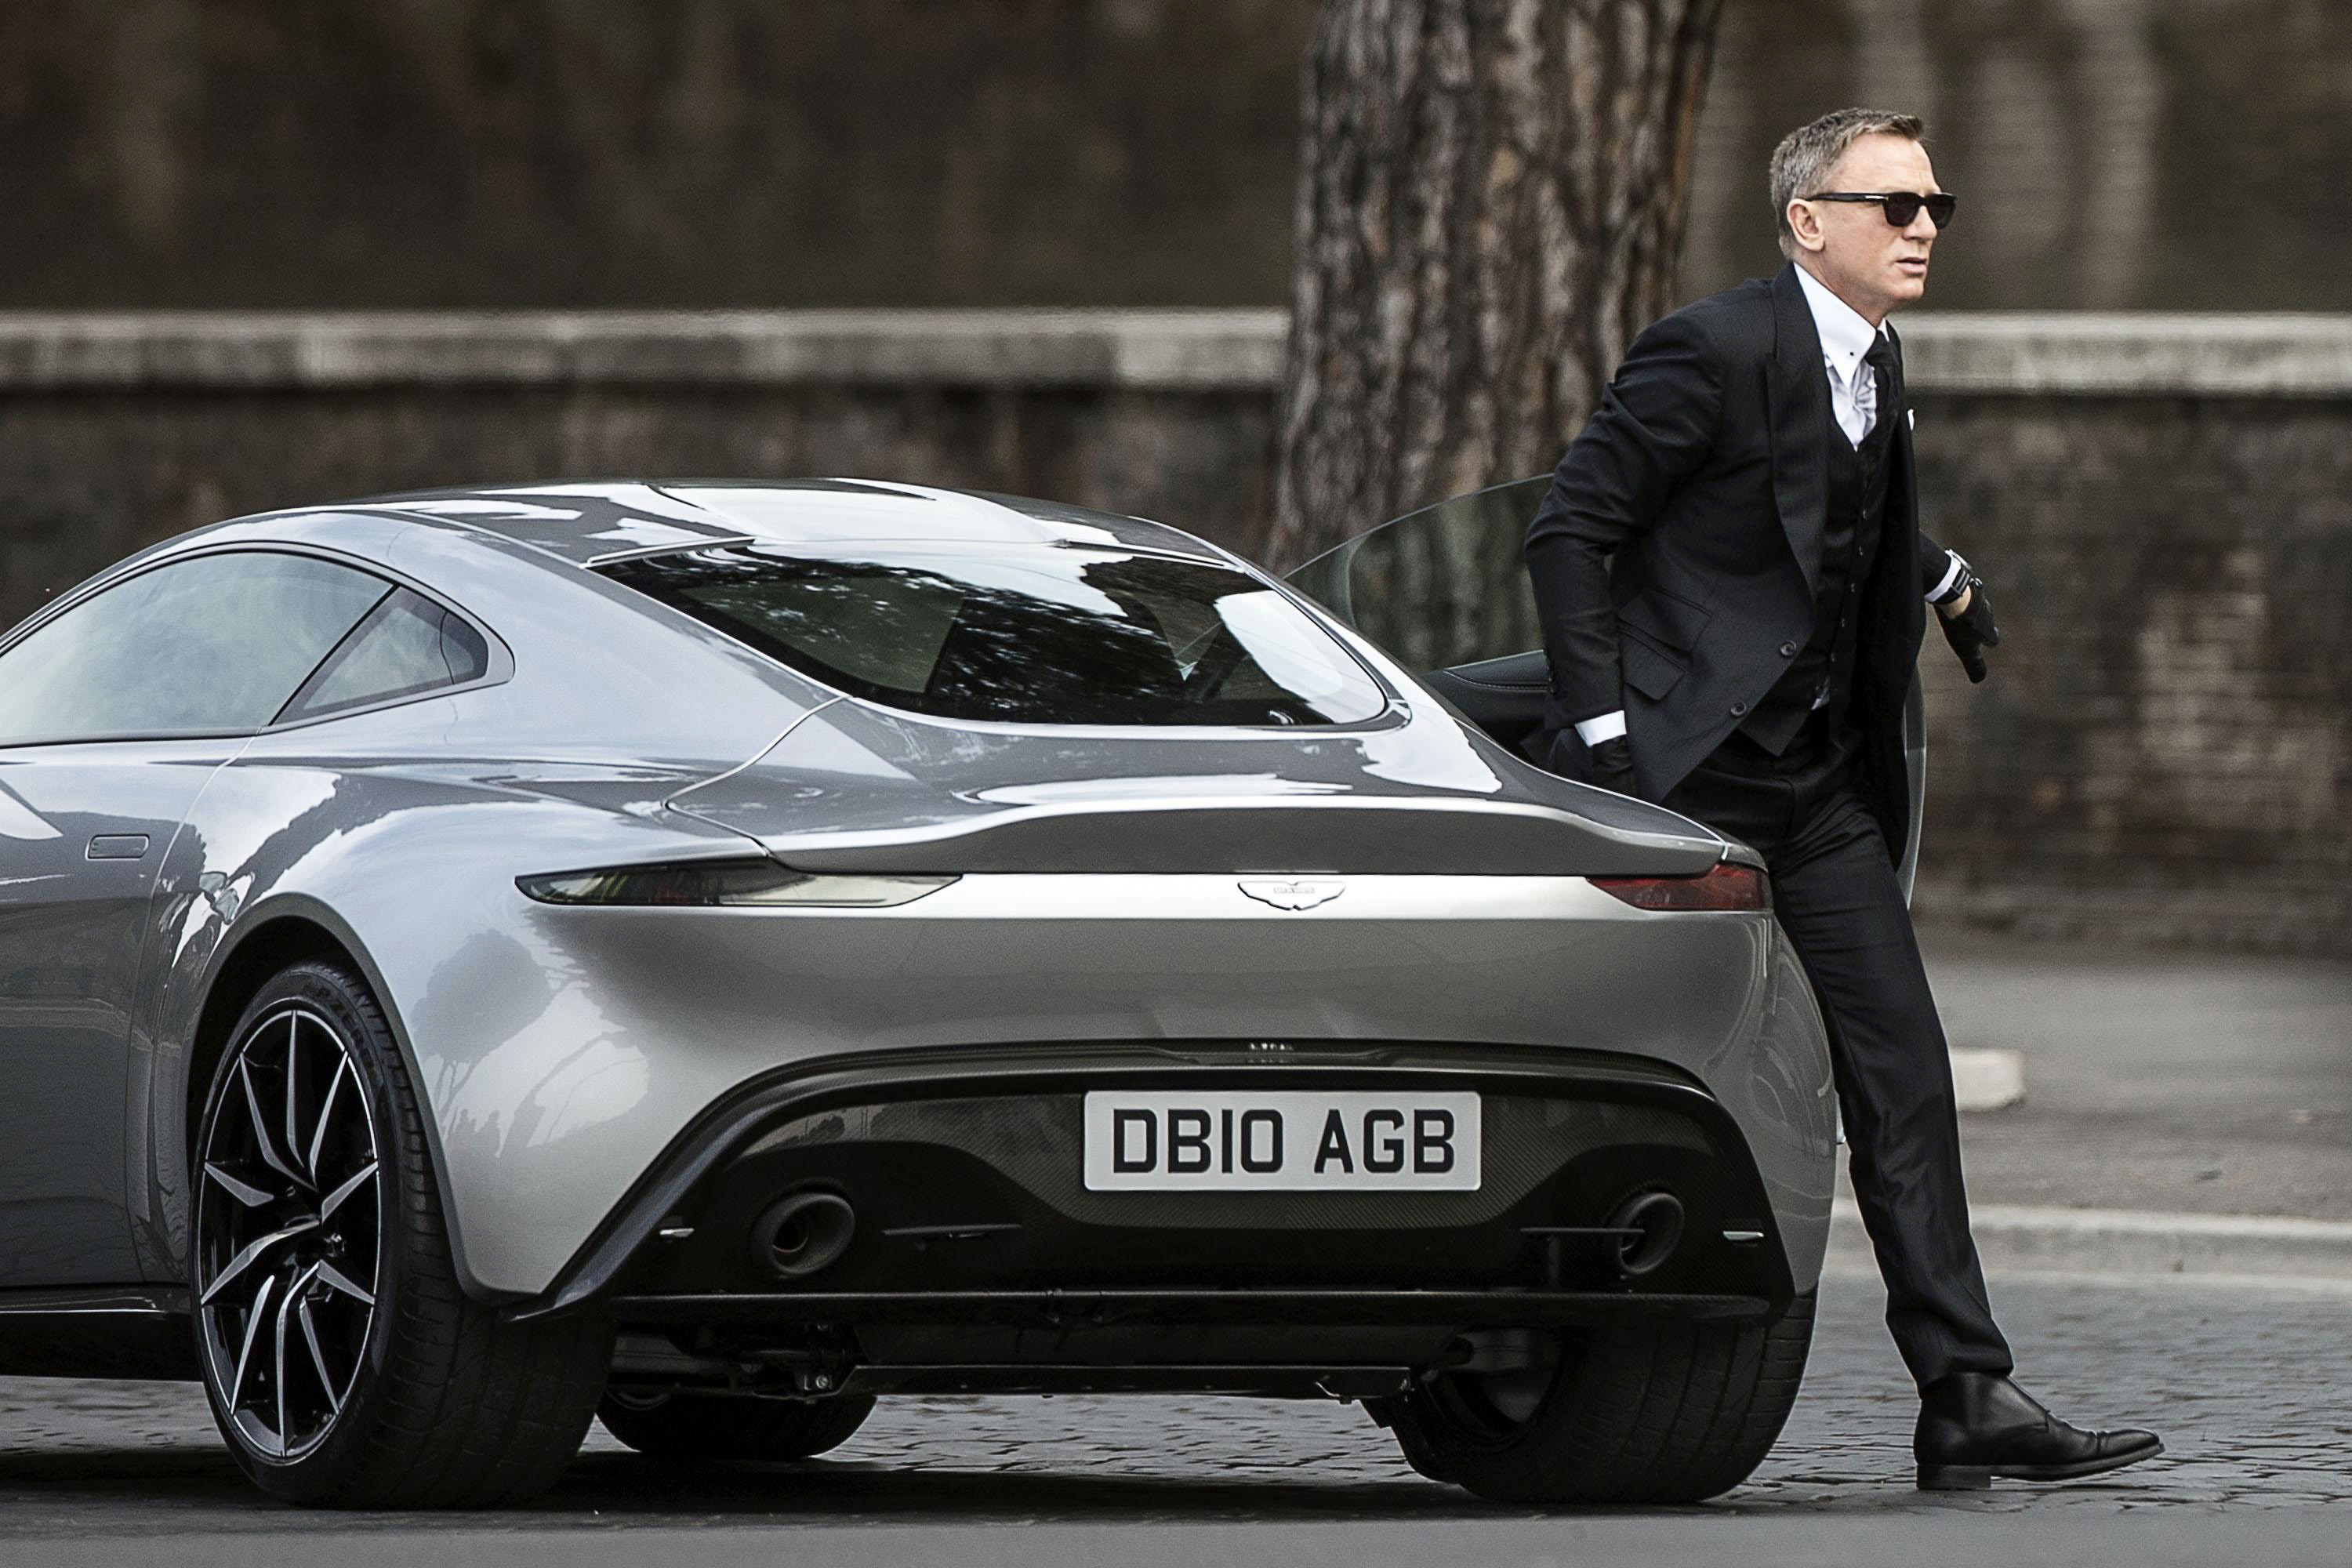 How The Aston Martin Db10 Stole The Show At Princess Eugenie S Wedding For Motoring Fans